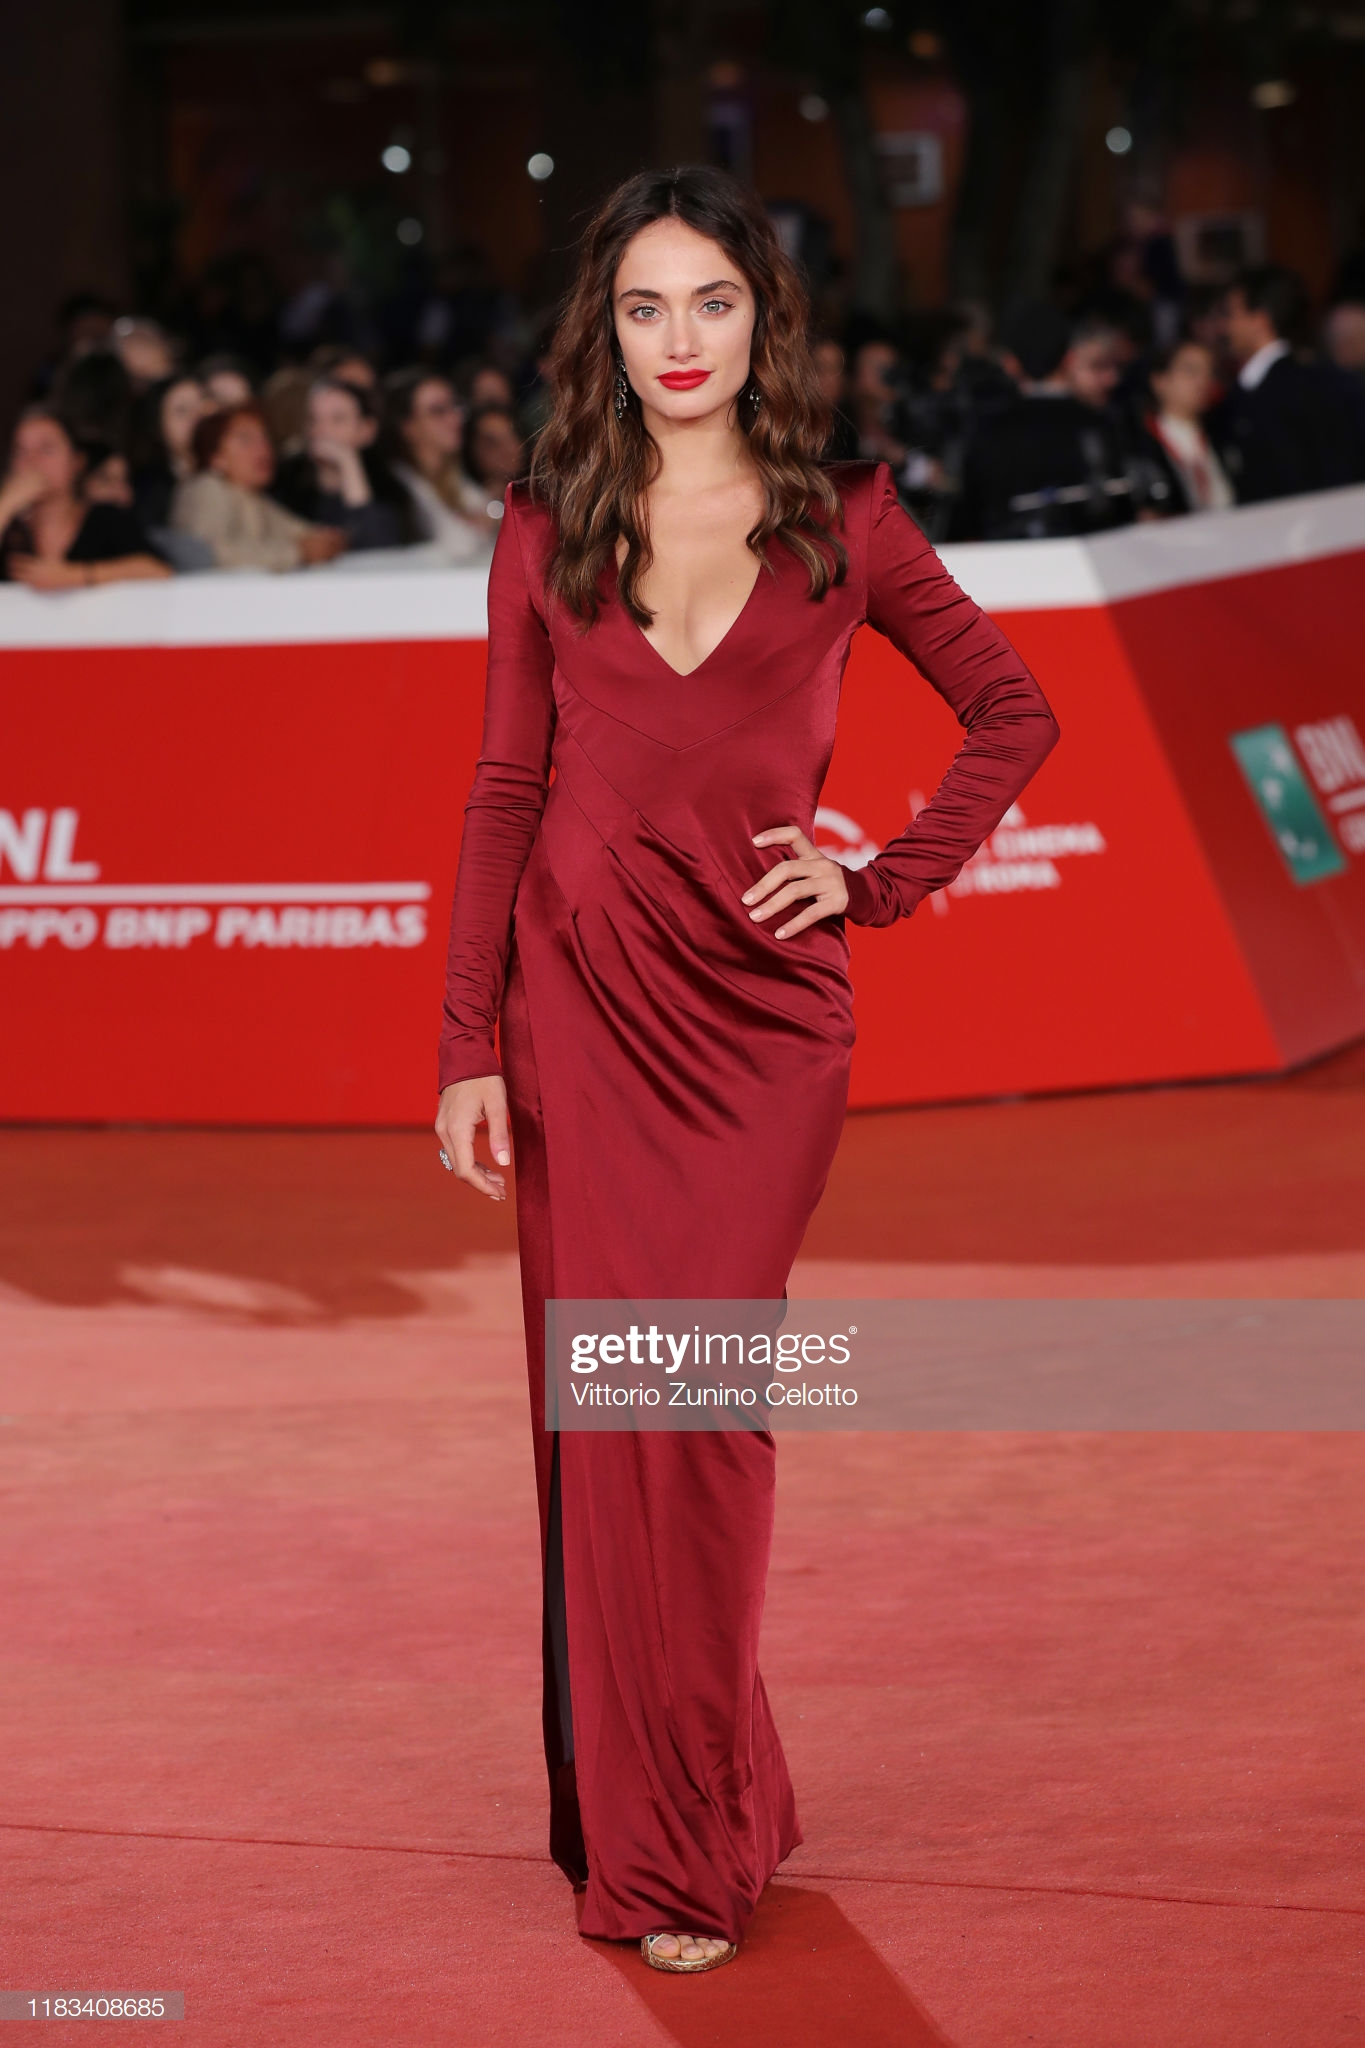 Denise Capezza Festa del Cinema di Roma 2019 attrice red carpet documentario negramaro